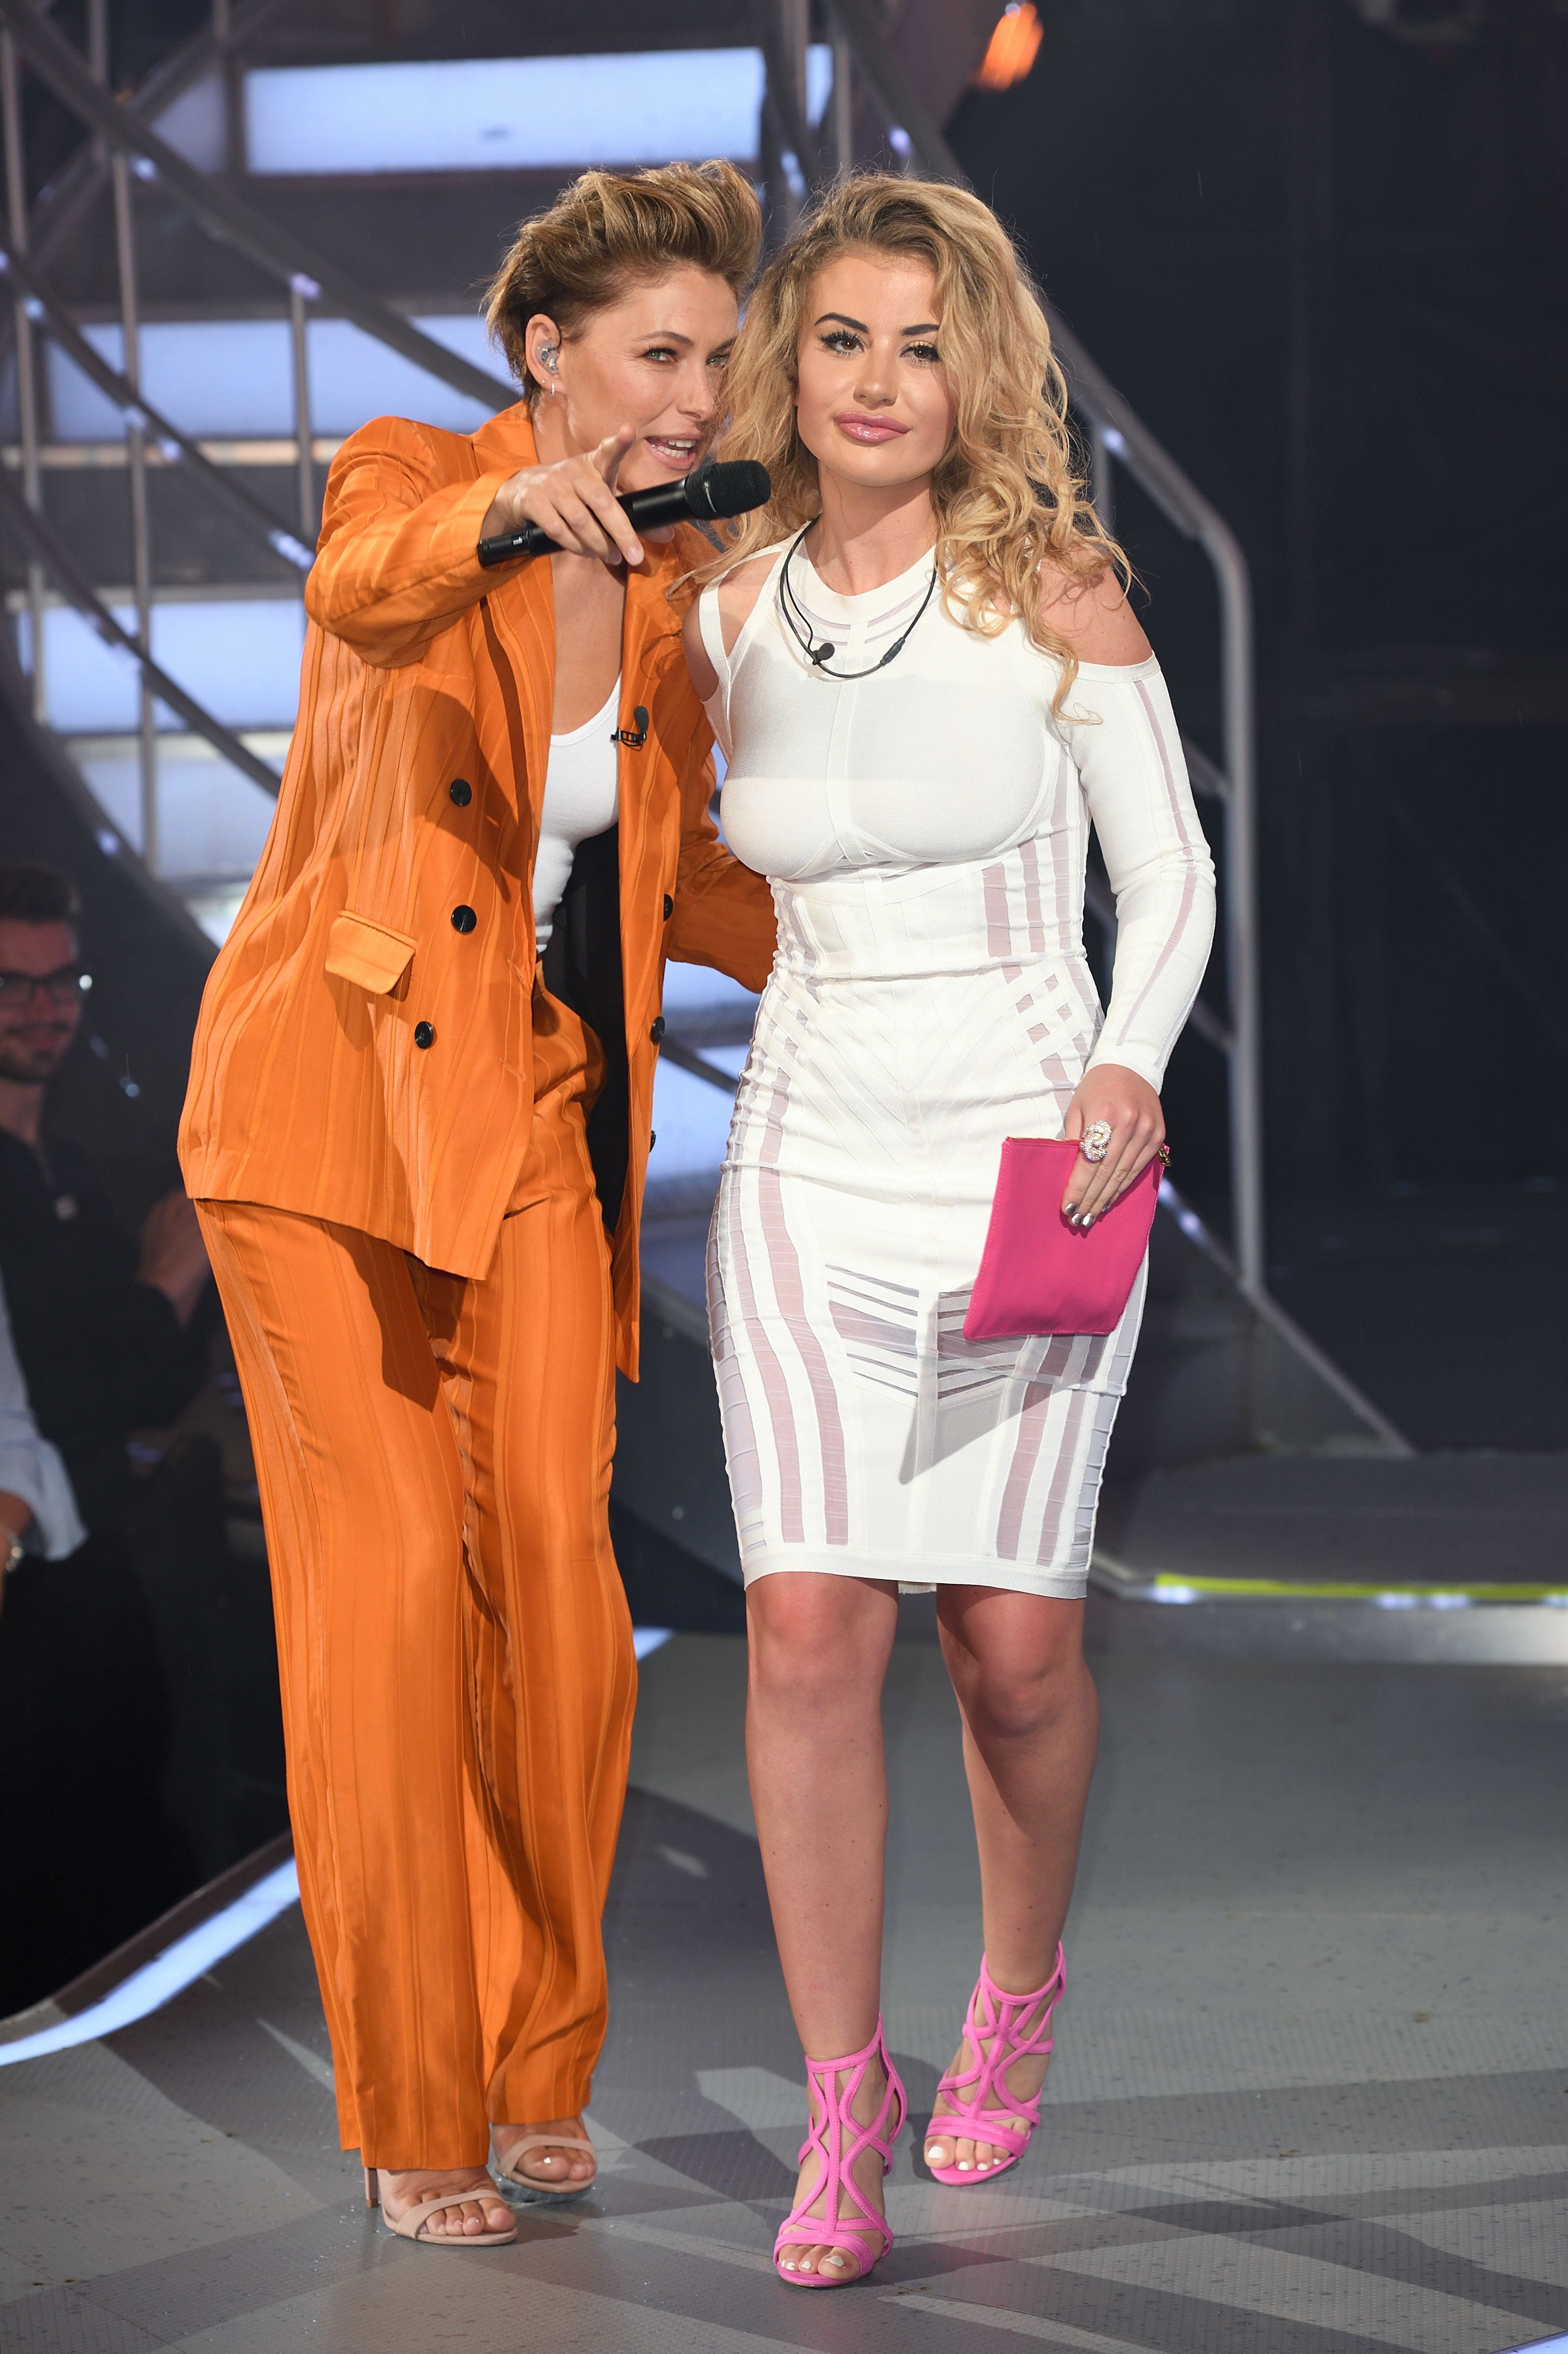 Chloe Ayling 'Disgusted' To Learn About Jermaine Pennant's Marriage As She Exits 'Celebrity Big Brother'